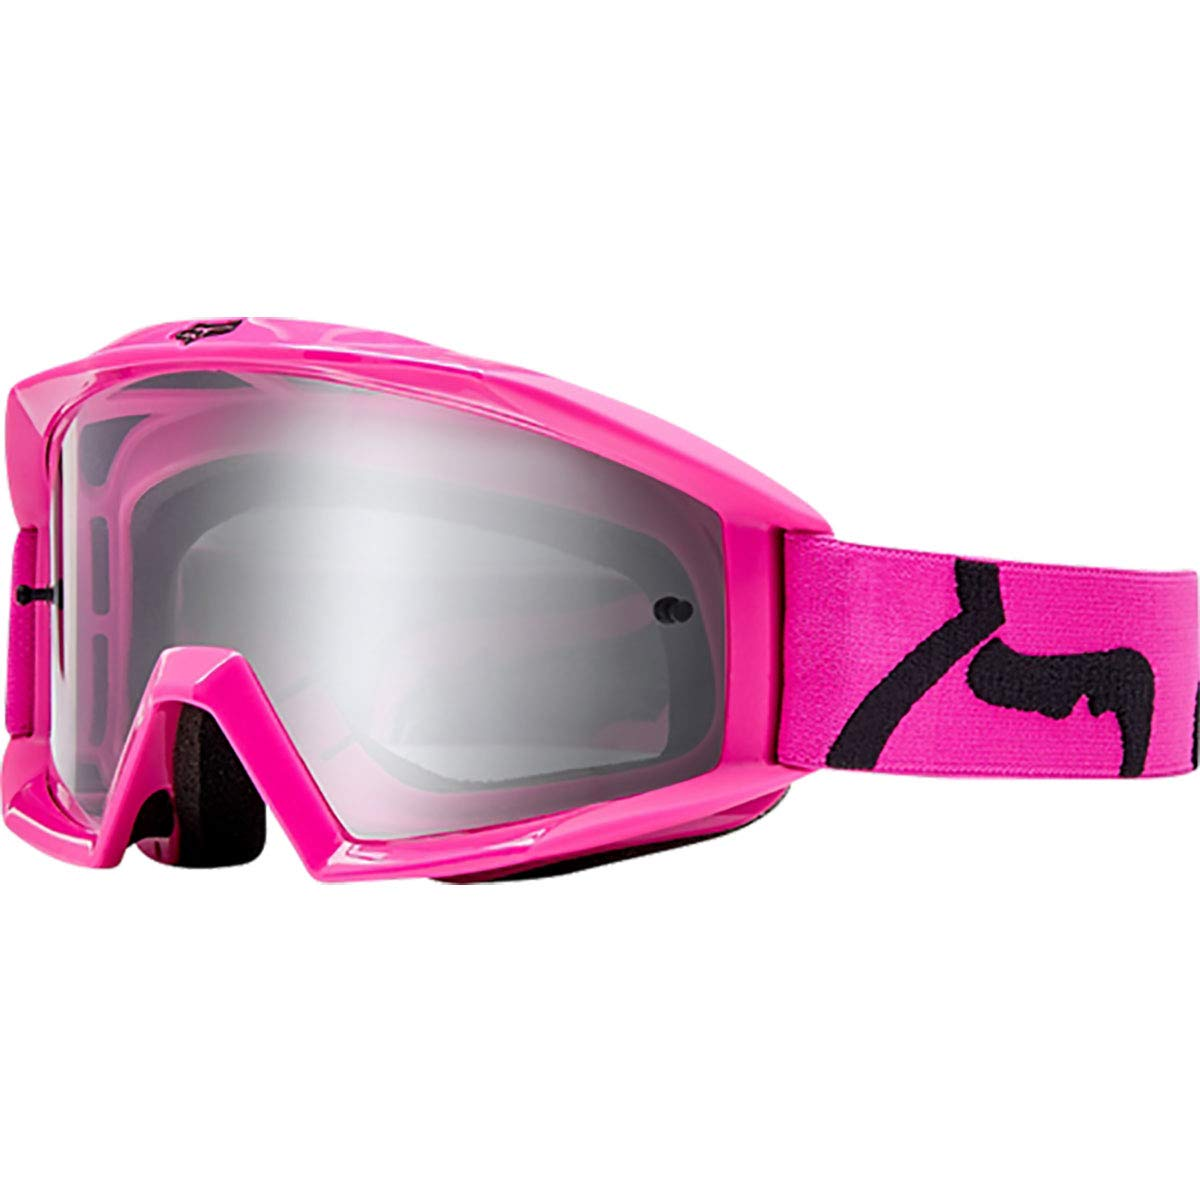 Fox Racing 2019 Youth Main Goggles - Race (BOYS)